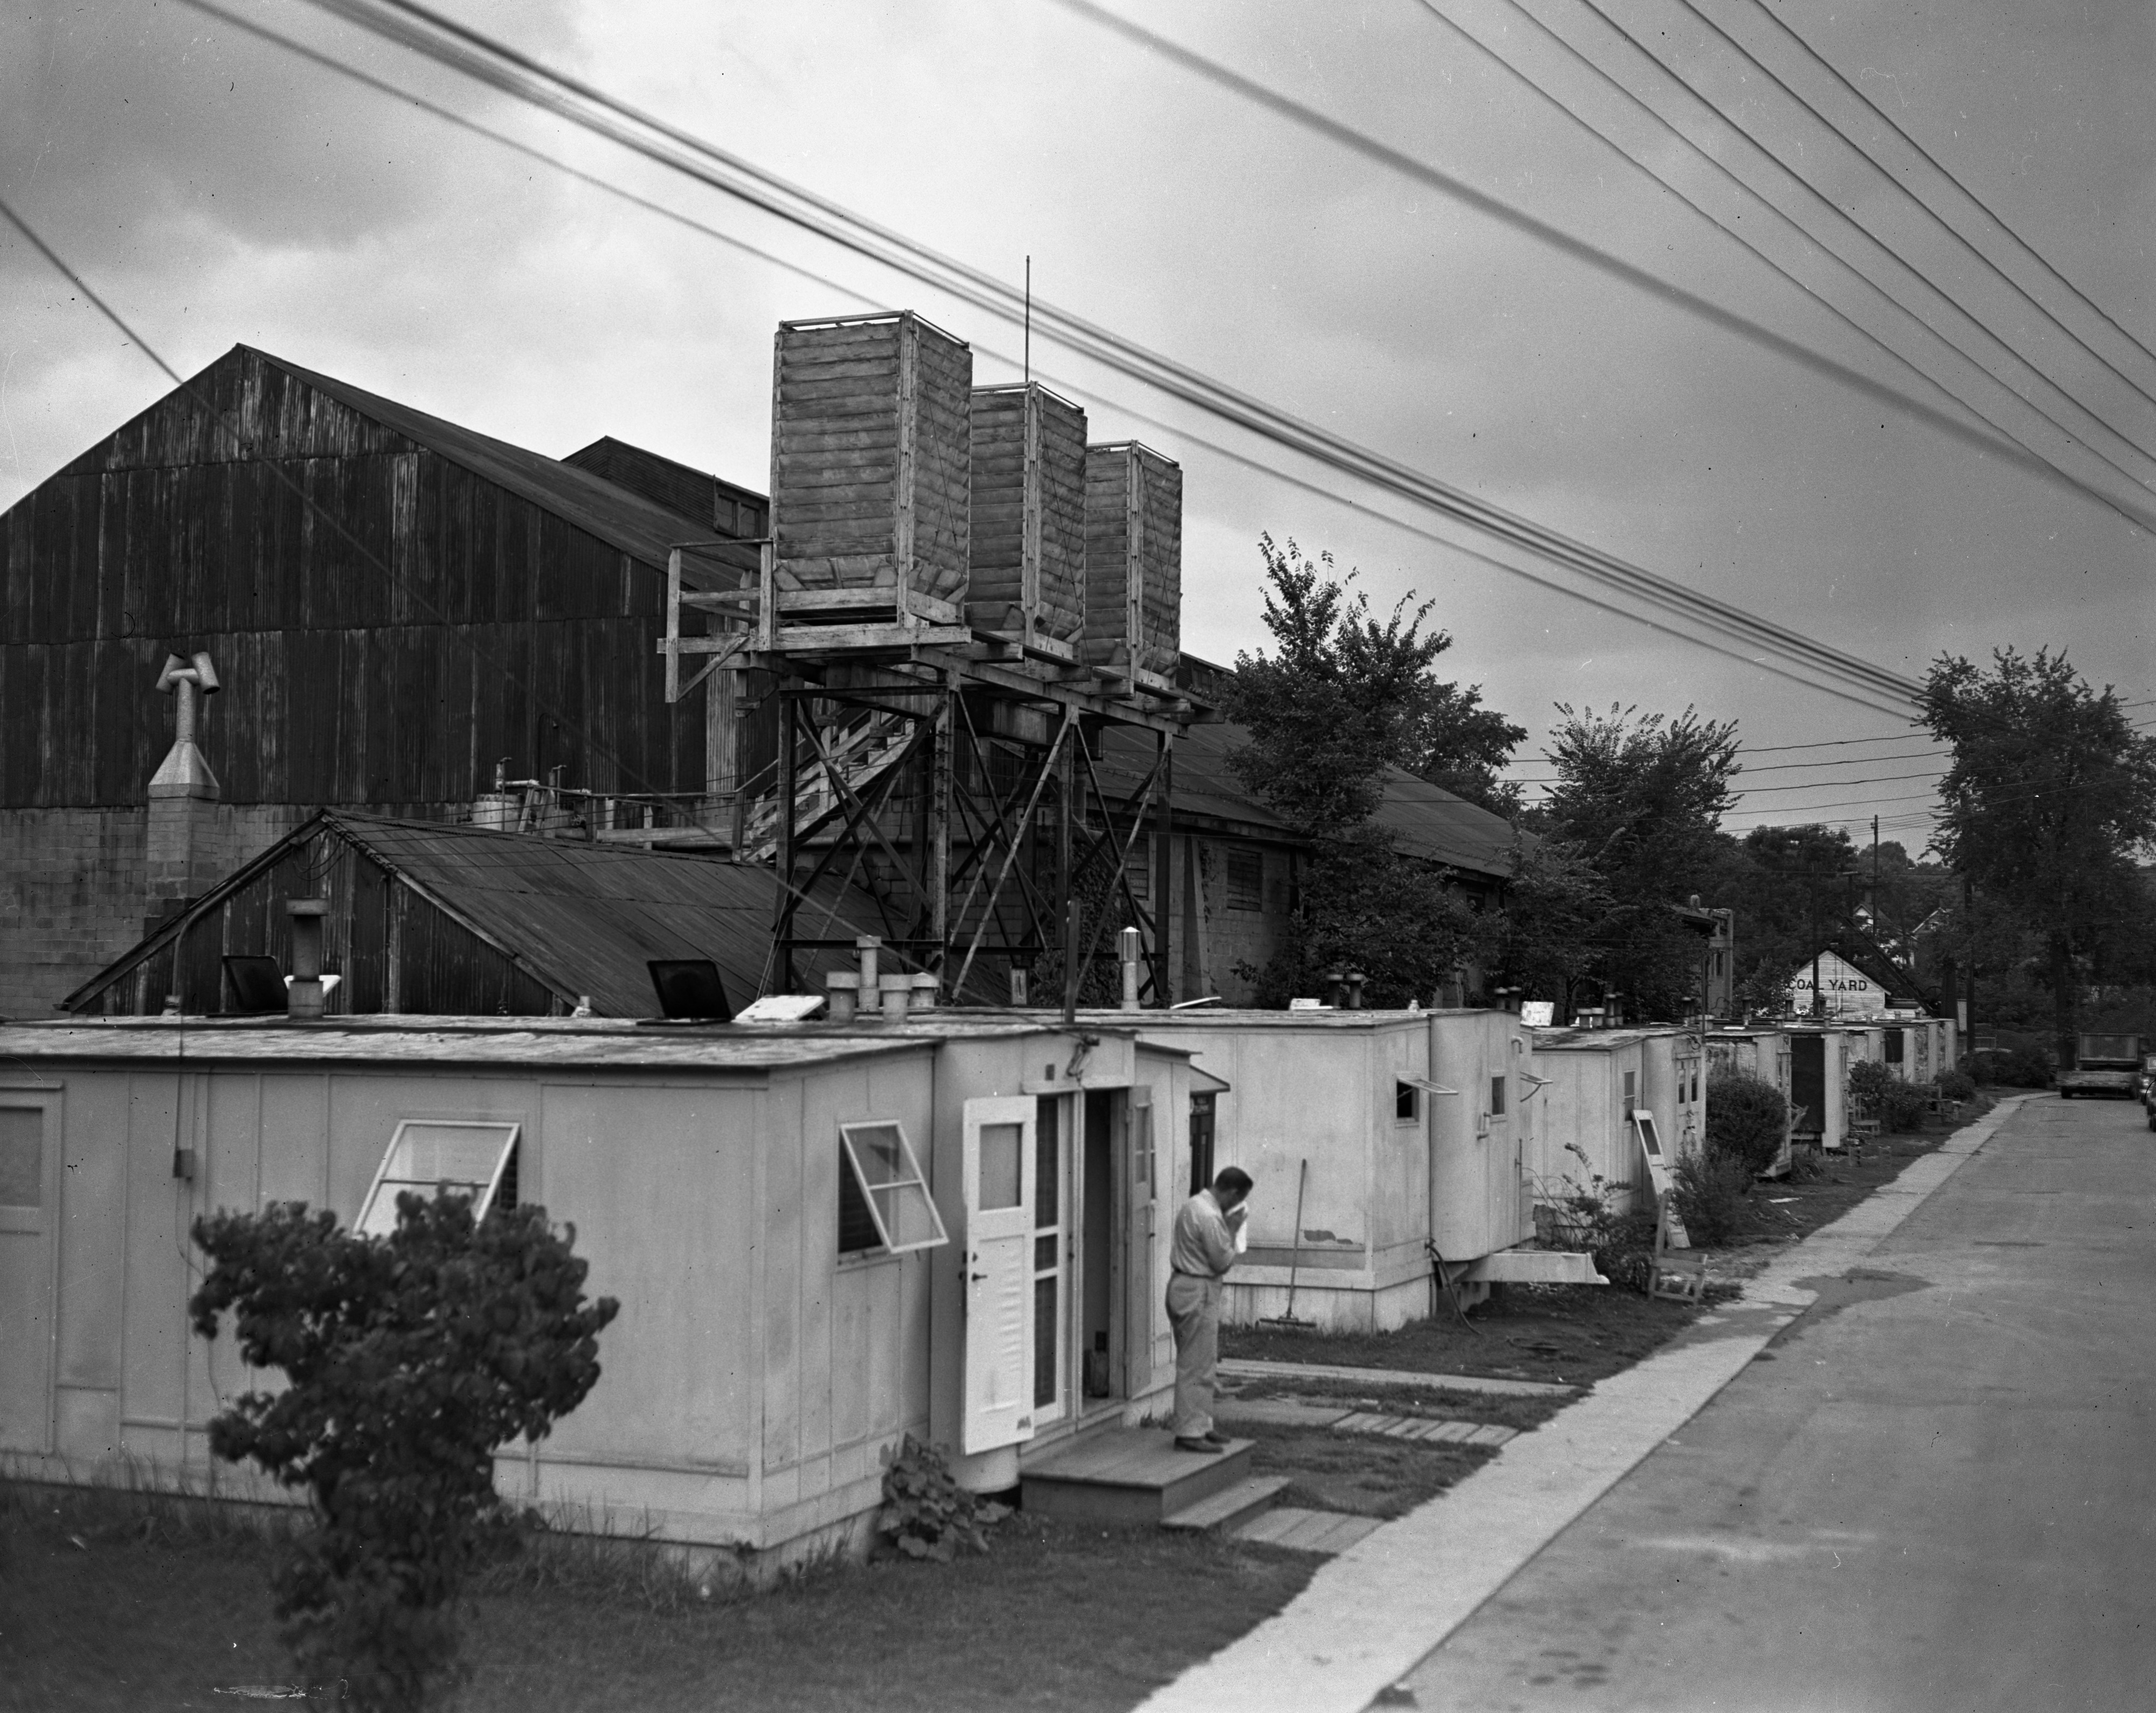 Several dwelling units in the University of Michigan's Veterans Village near the Coliseum, August 1949 image